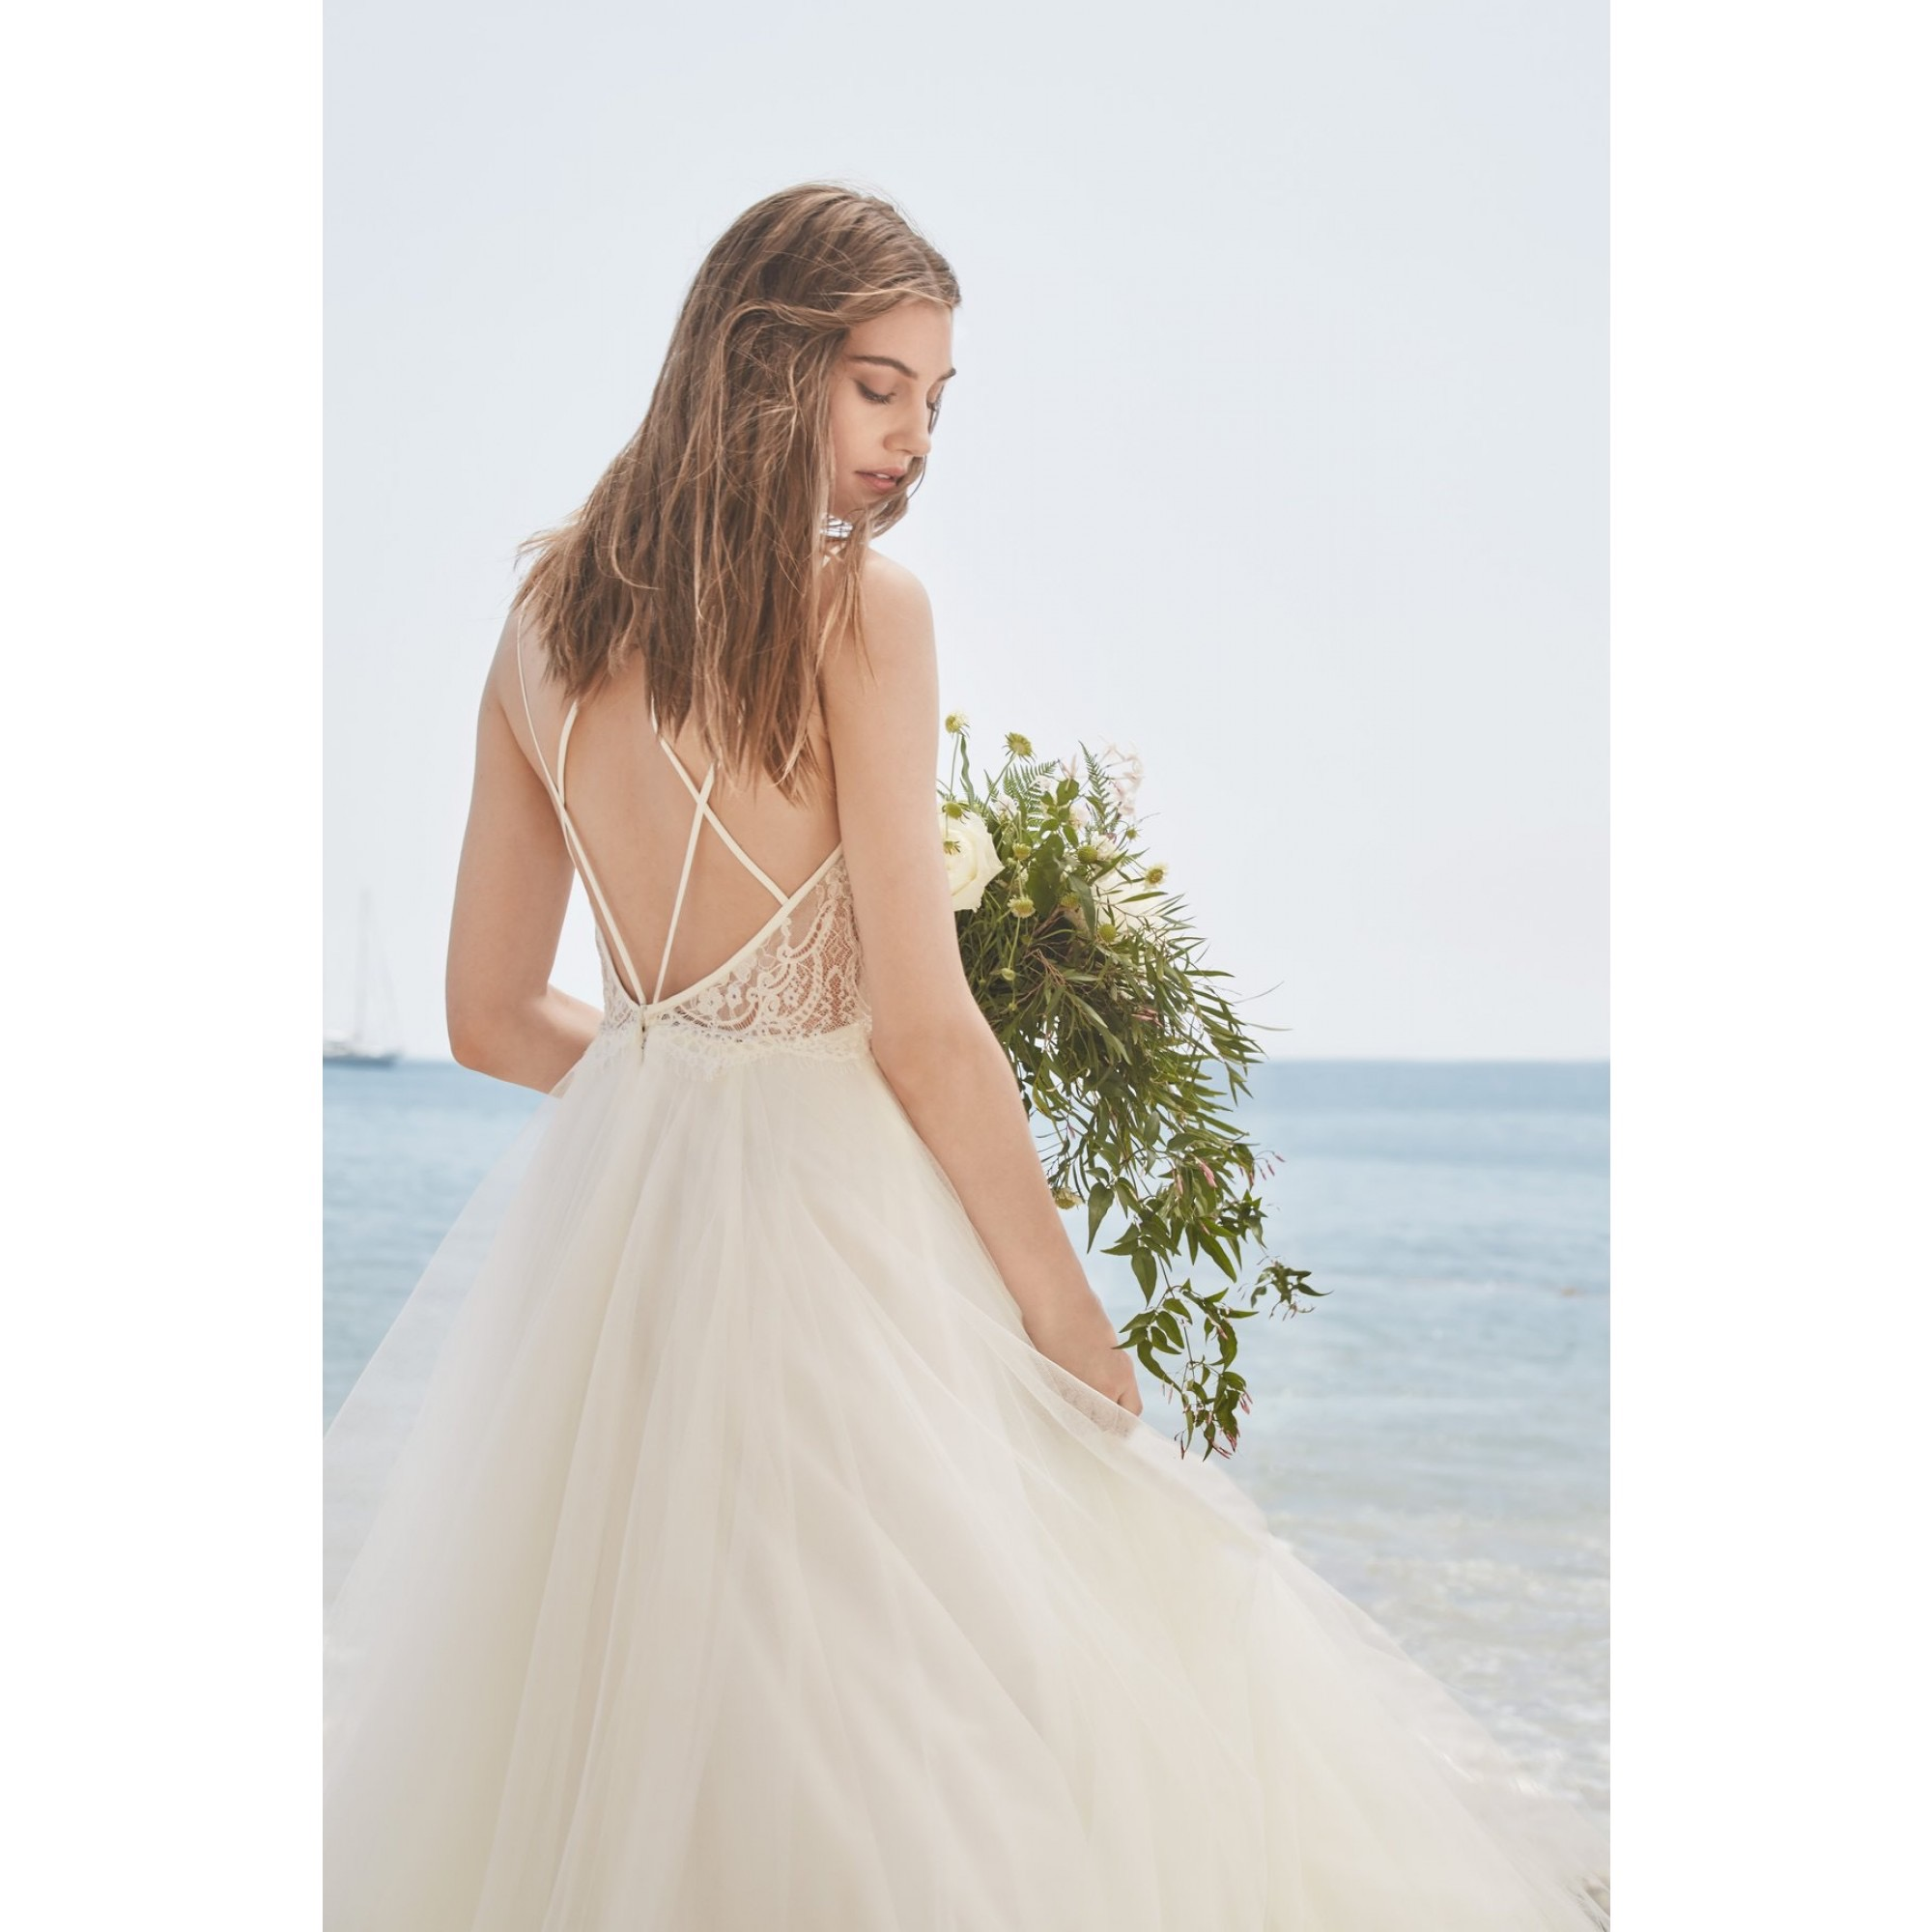 Boho-Chic Wedding Dresses – The Blushing Bride boutique